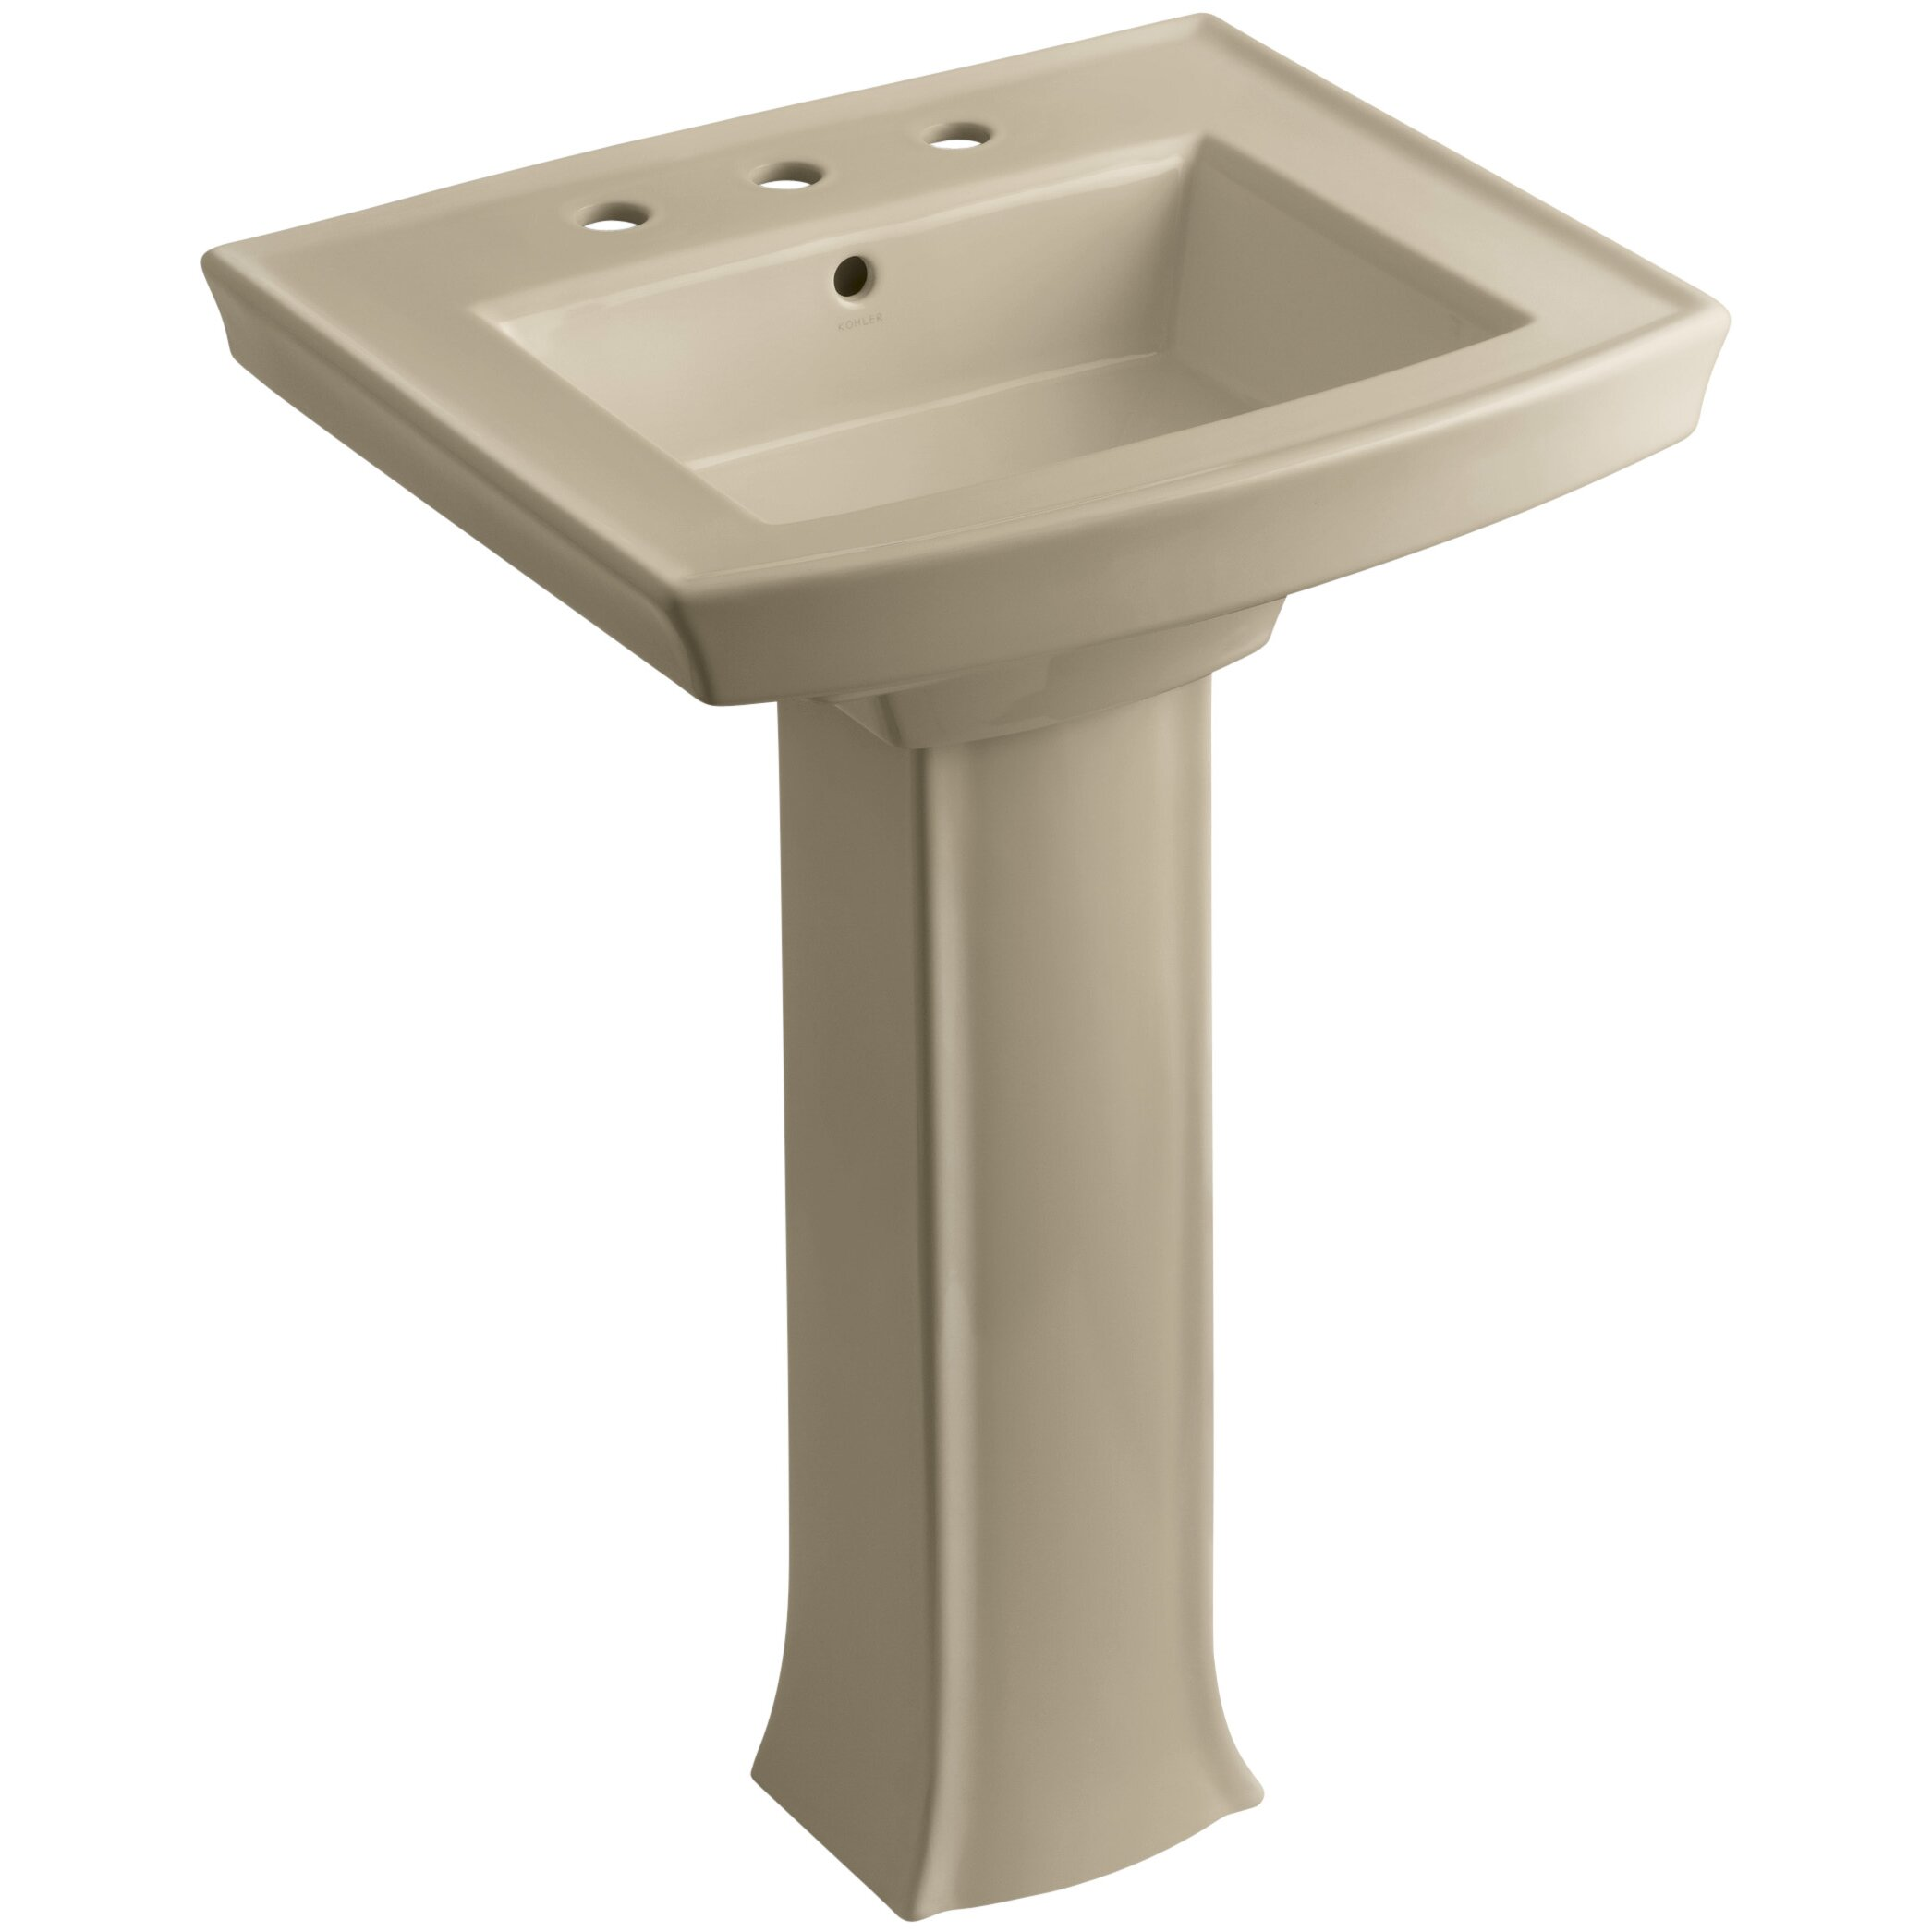 Kohler Kohler Archer Pedestal Sink & Reviews Wayfair